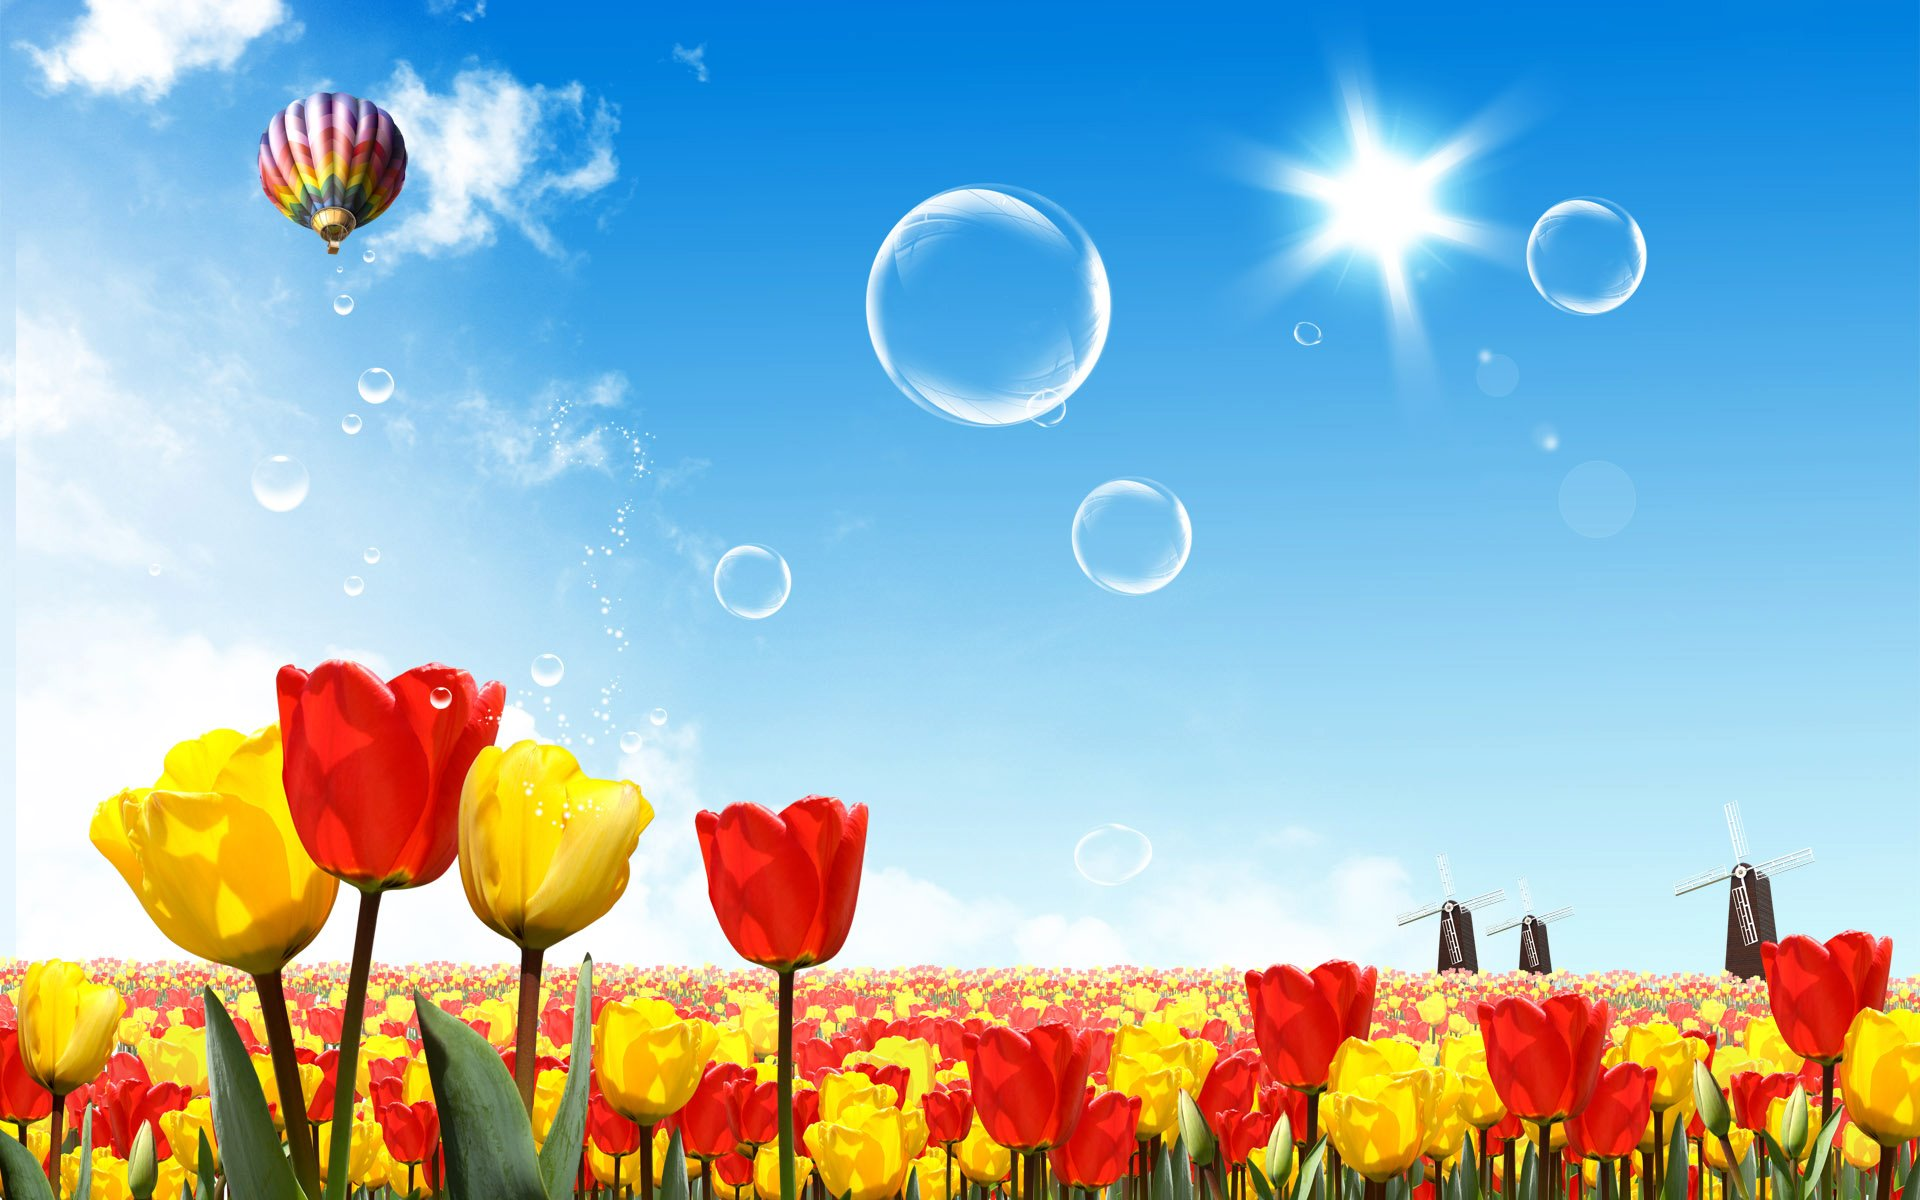 most beautiful colorfull flowers airbaloon picture wallpaper screensaver